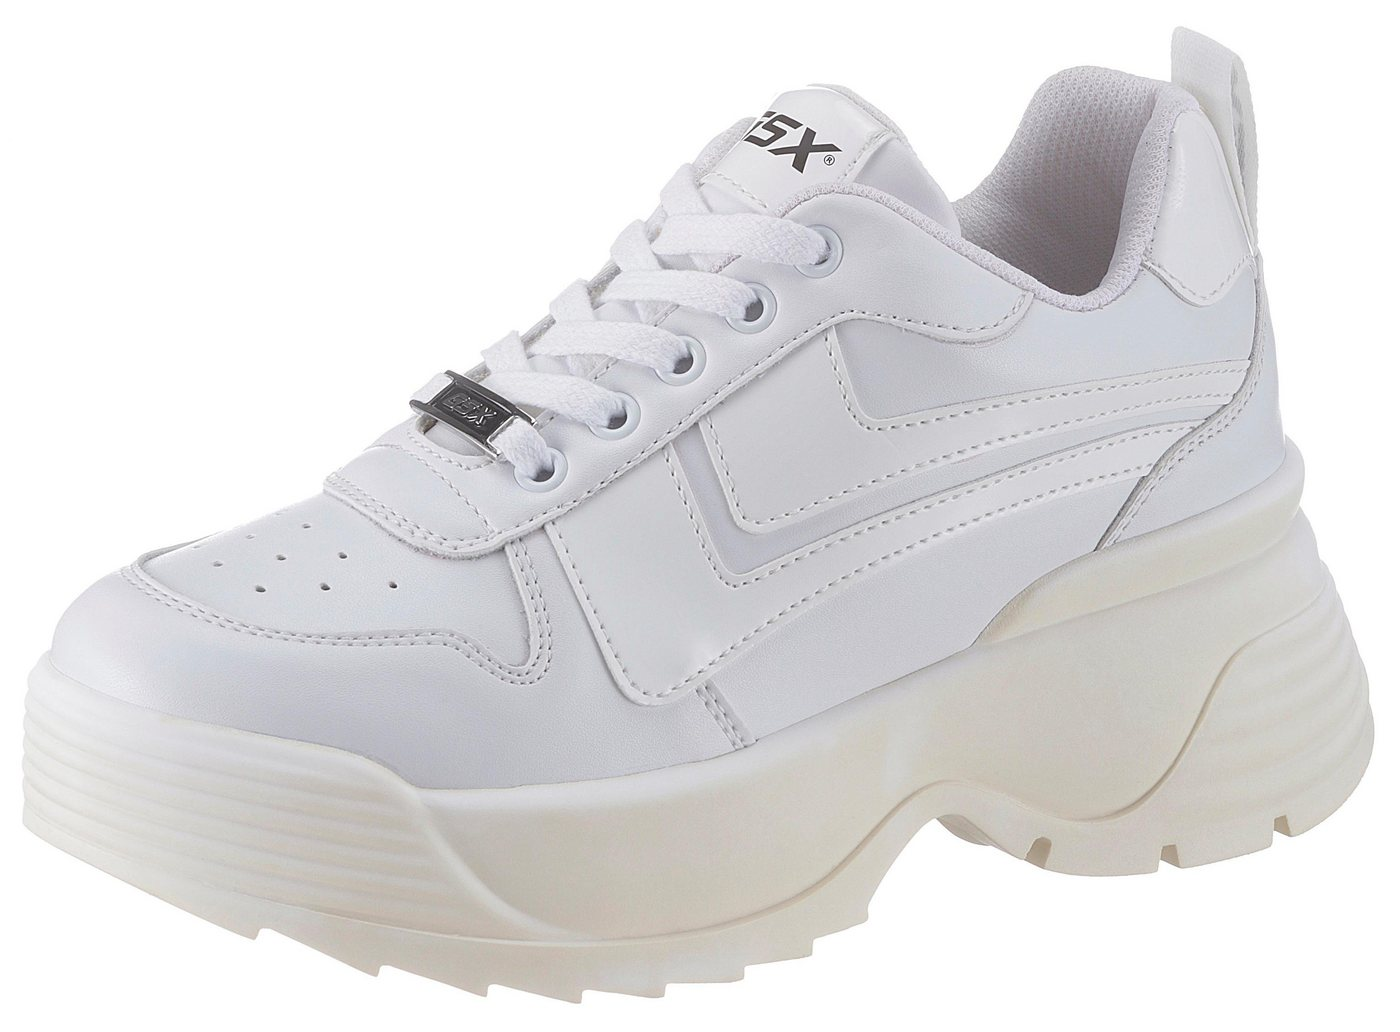 gsx -  Plateausneaker im Ugly-Style